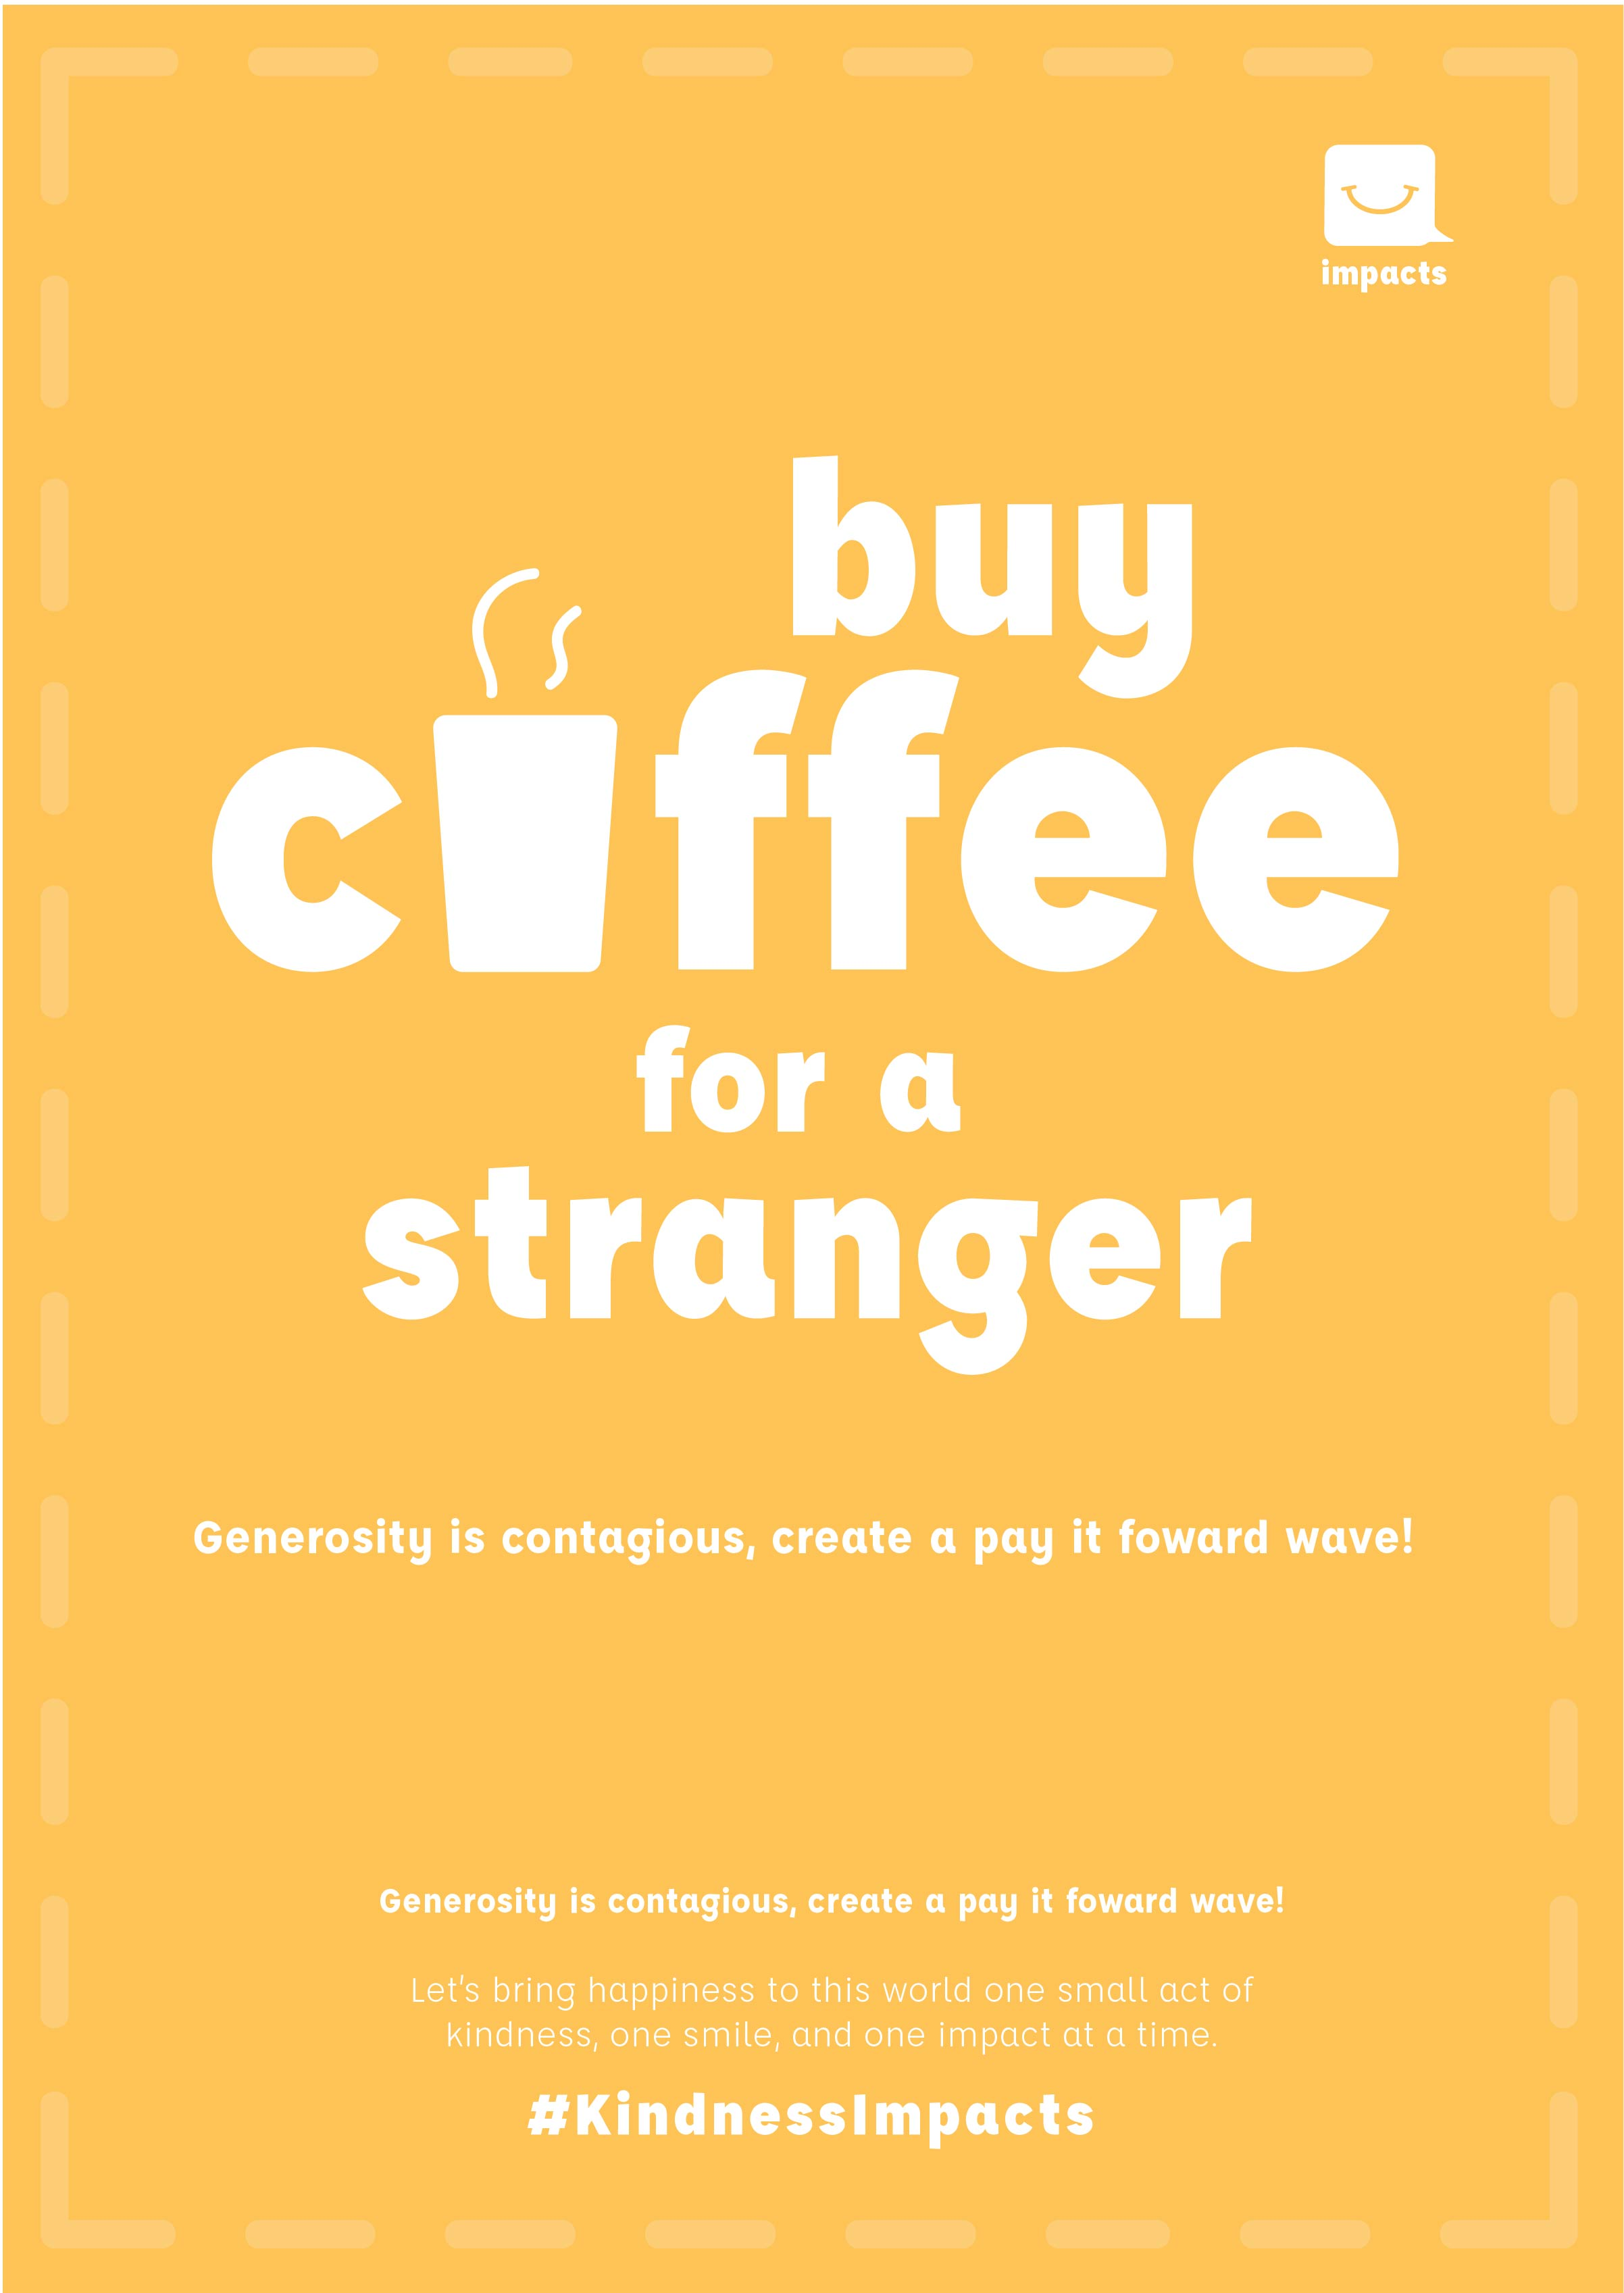 coffee act poster-04-04.jpg